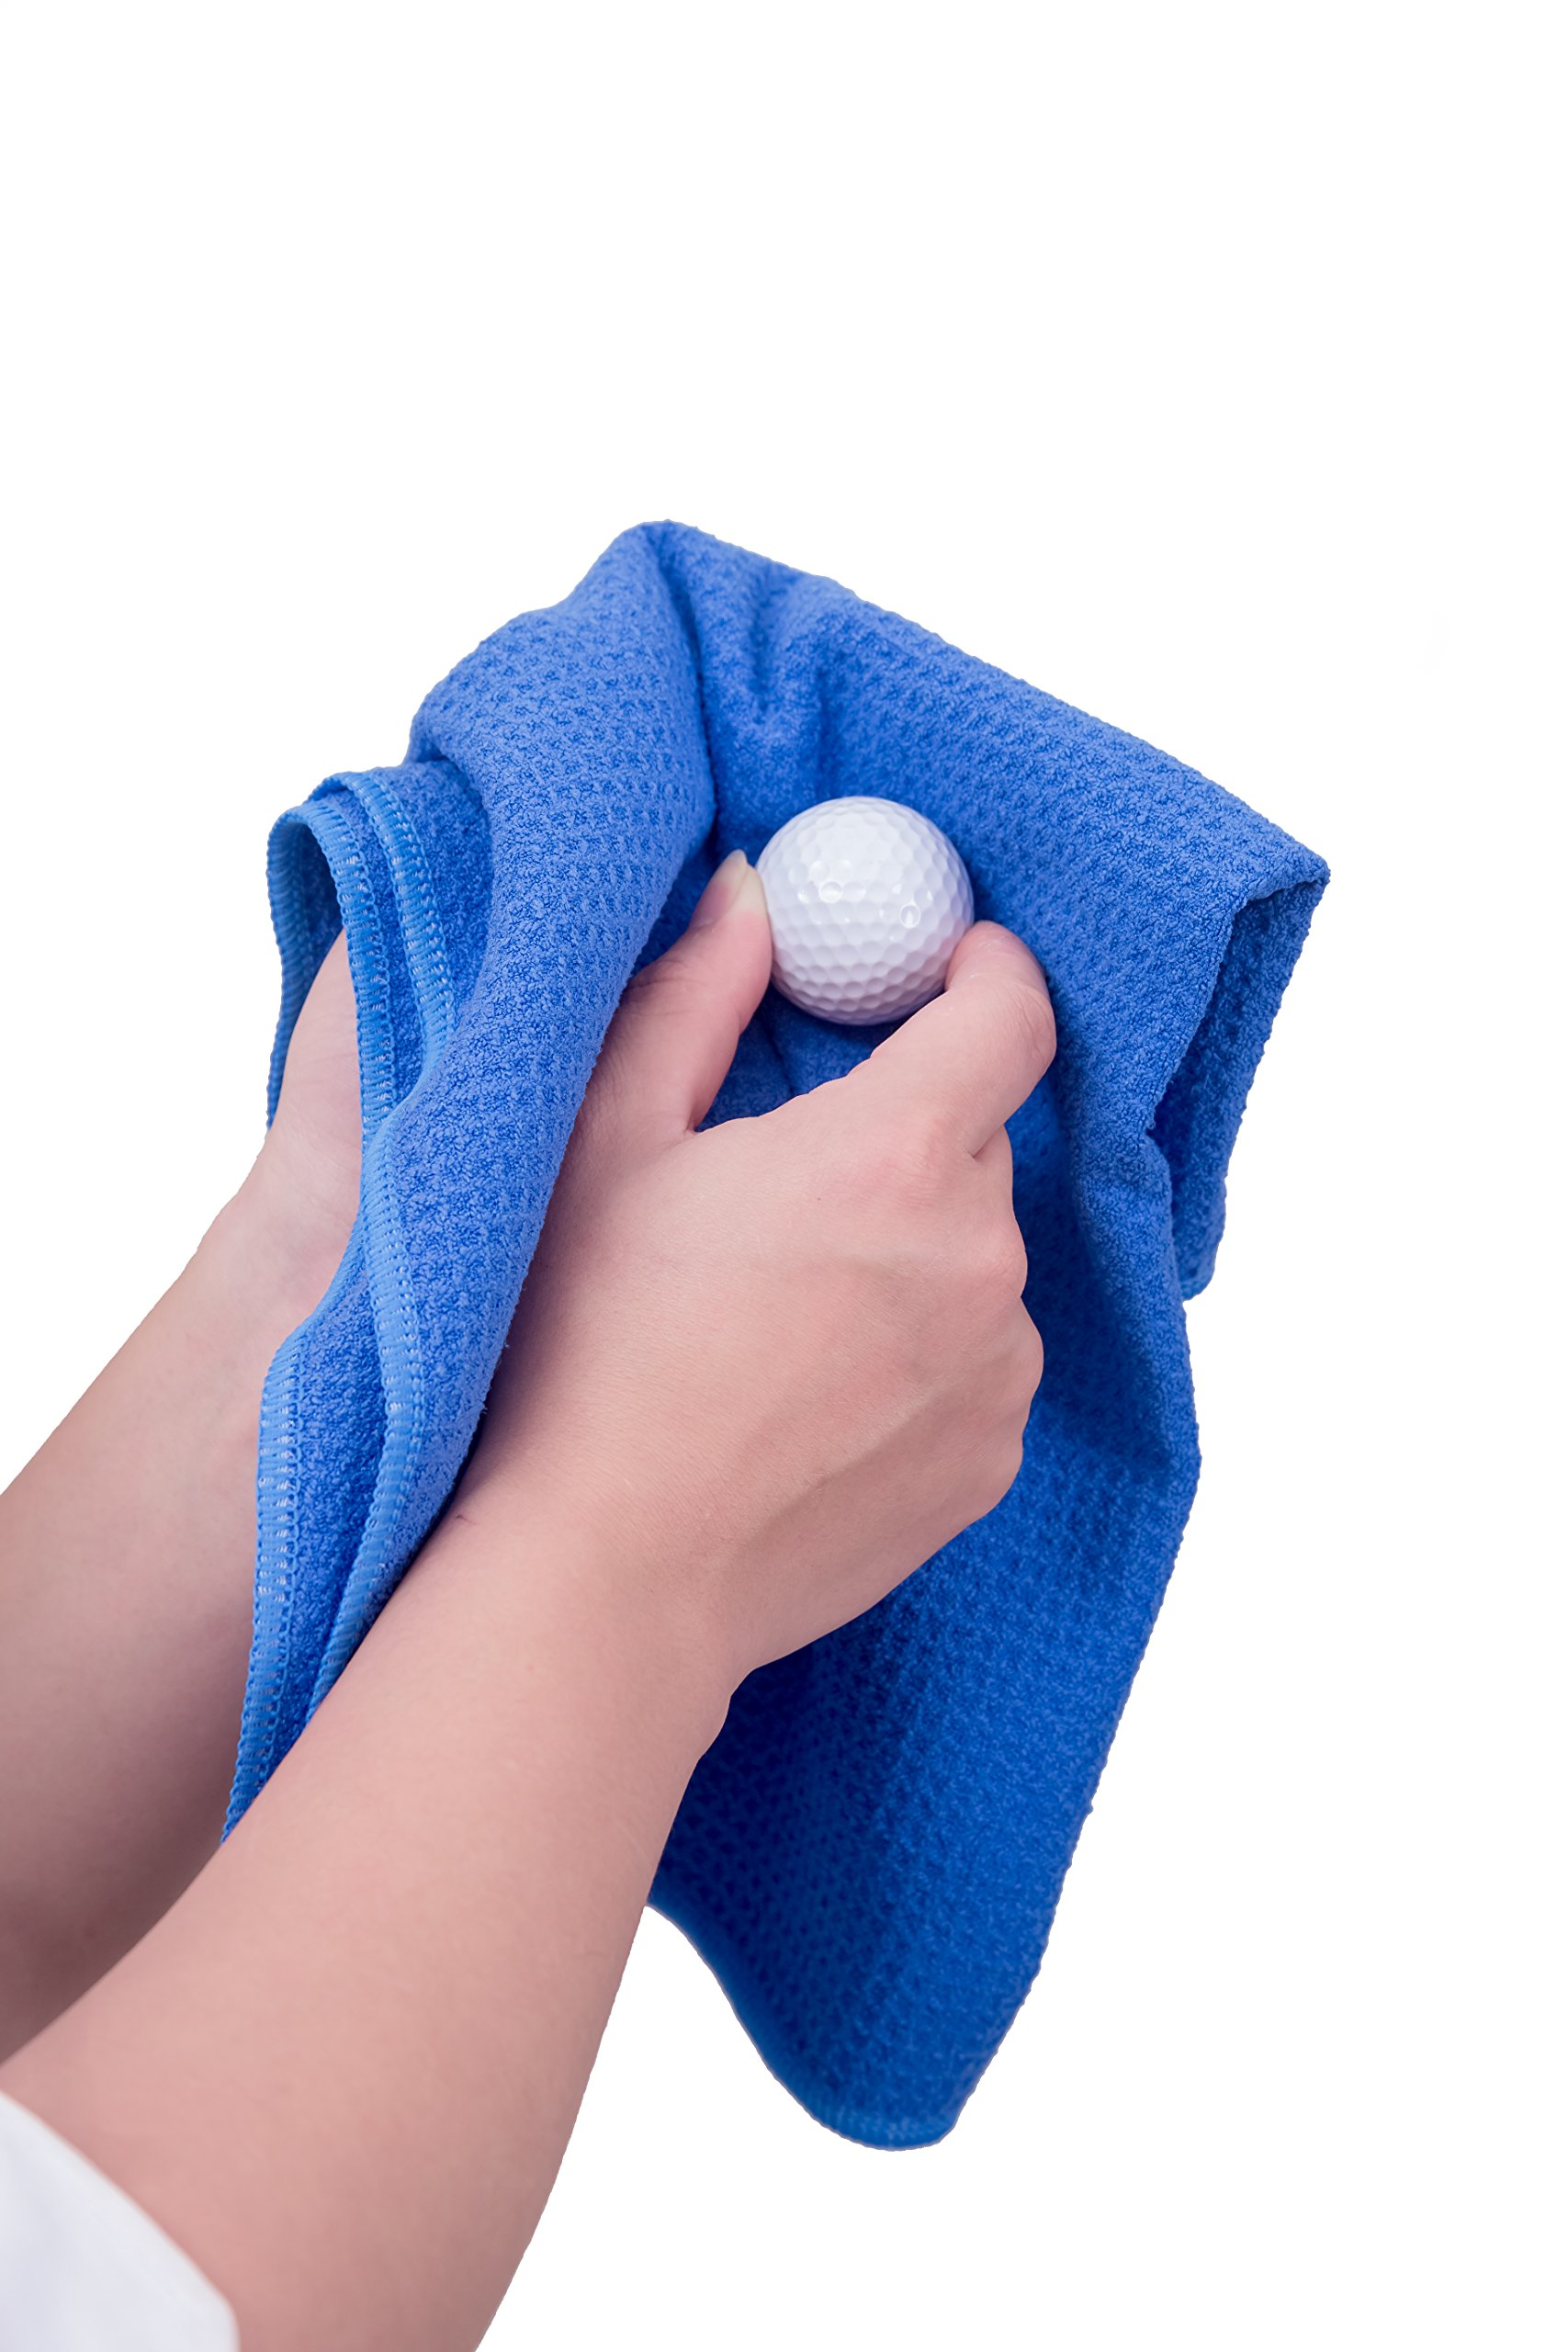 Microfiber Deep Waffle Weave Golf Towel 2 pack,Light Weight & Quick Drying. Best for Cleaning all types of Clubs, Irons & Drivers.(Blue & Gray 16''x21'') by DVlente (Image #5)